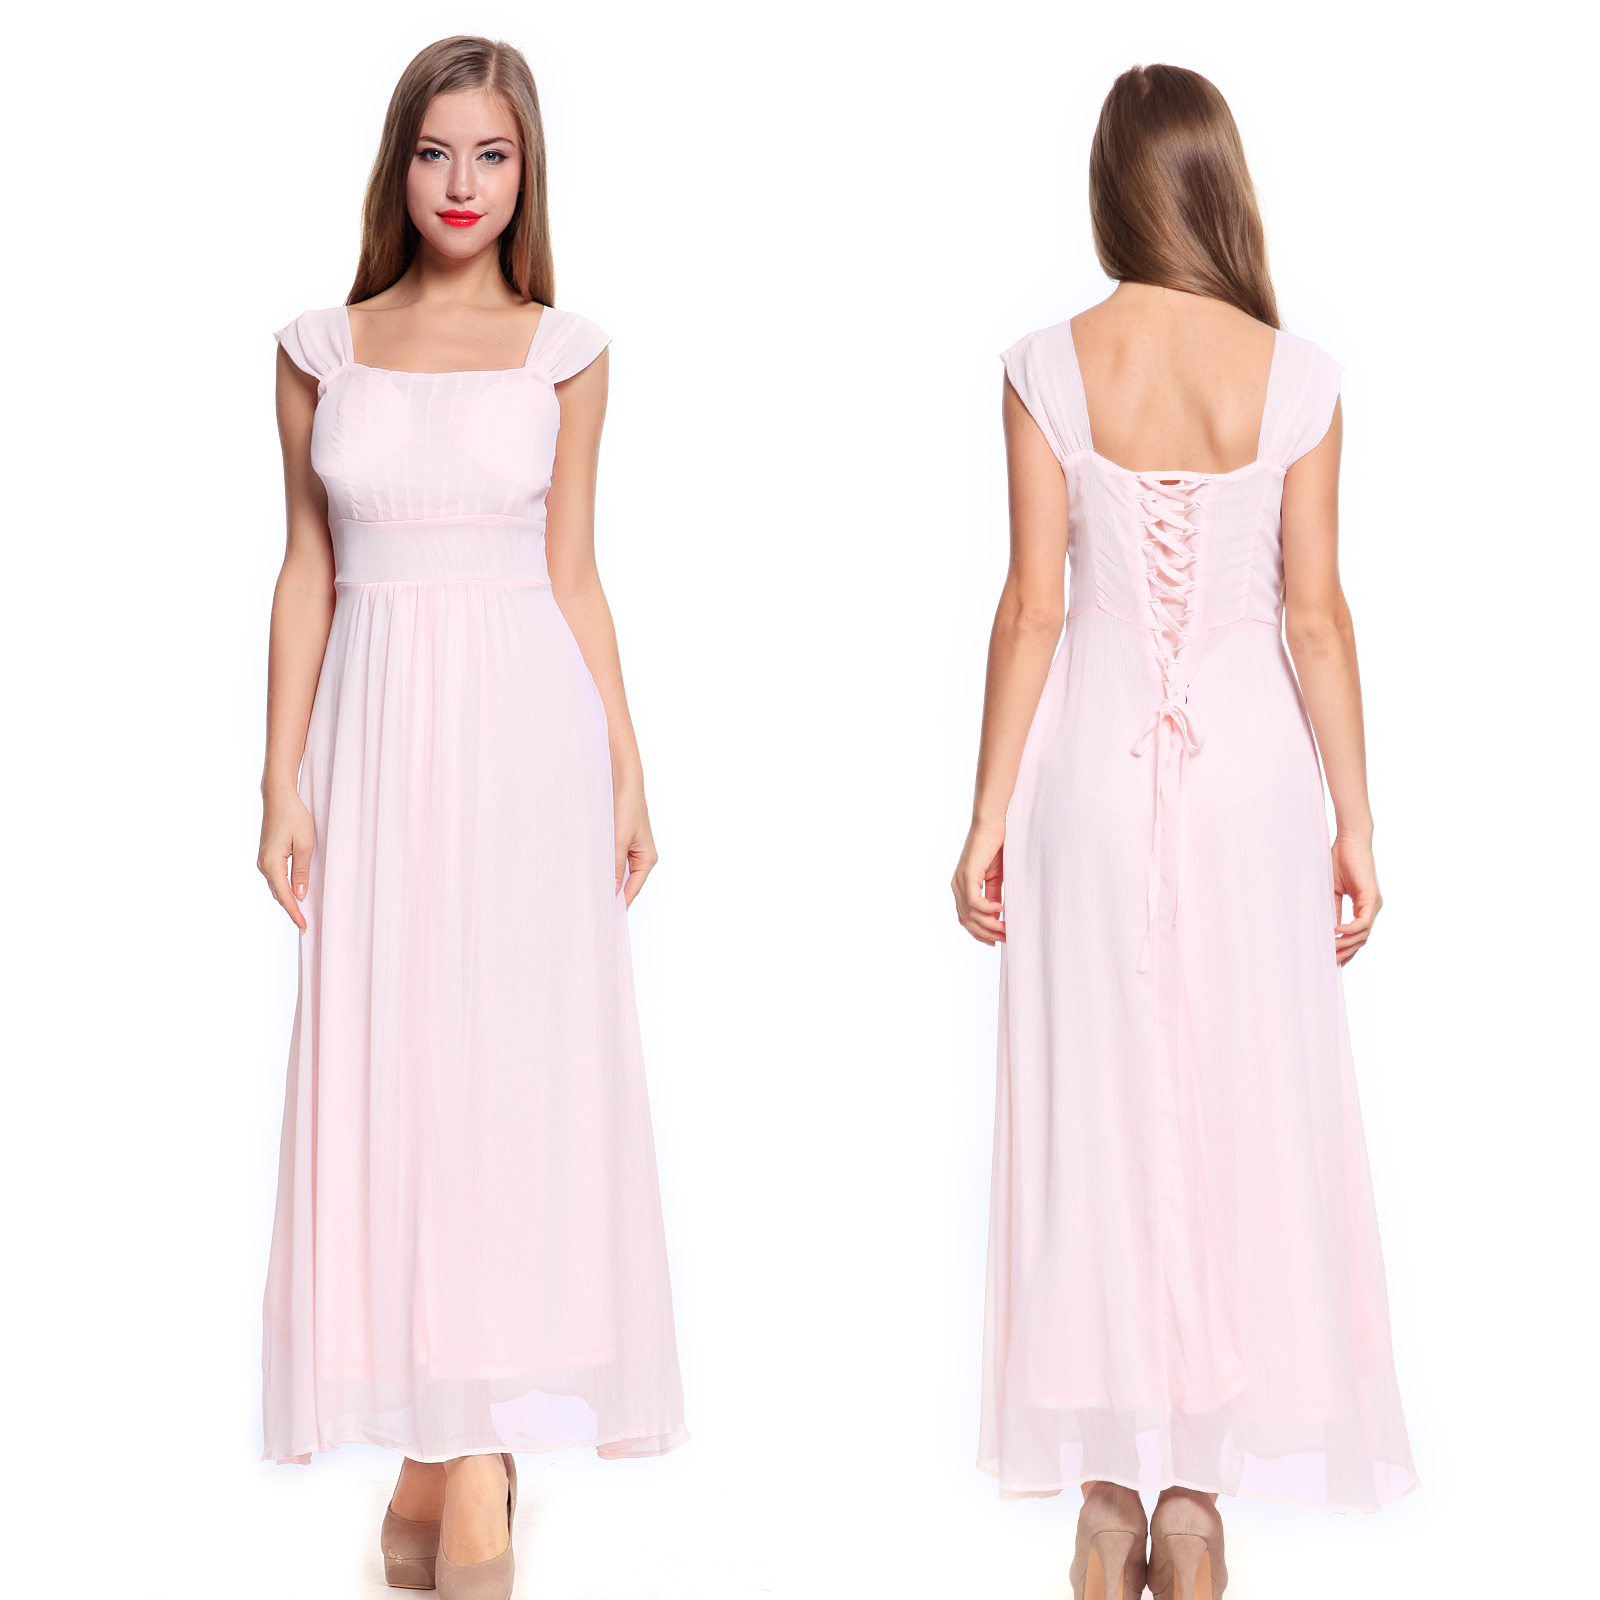 Prom dresses at burlington coat factory cheap wedding for Tj maxx wedding guest dresses